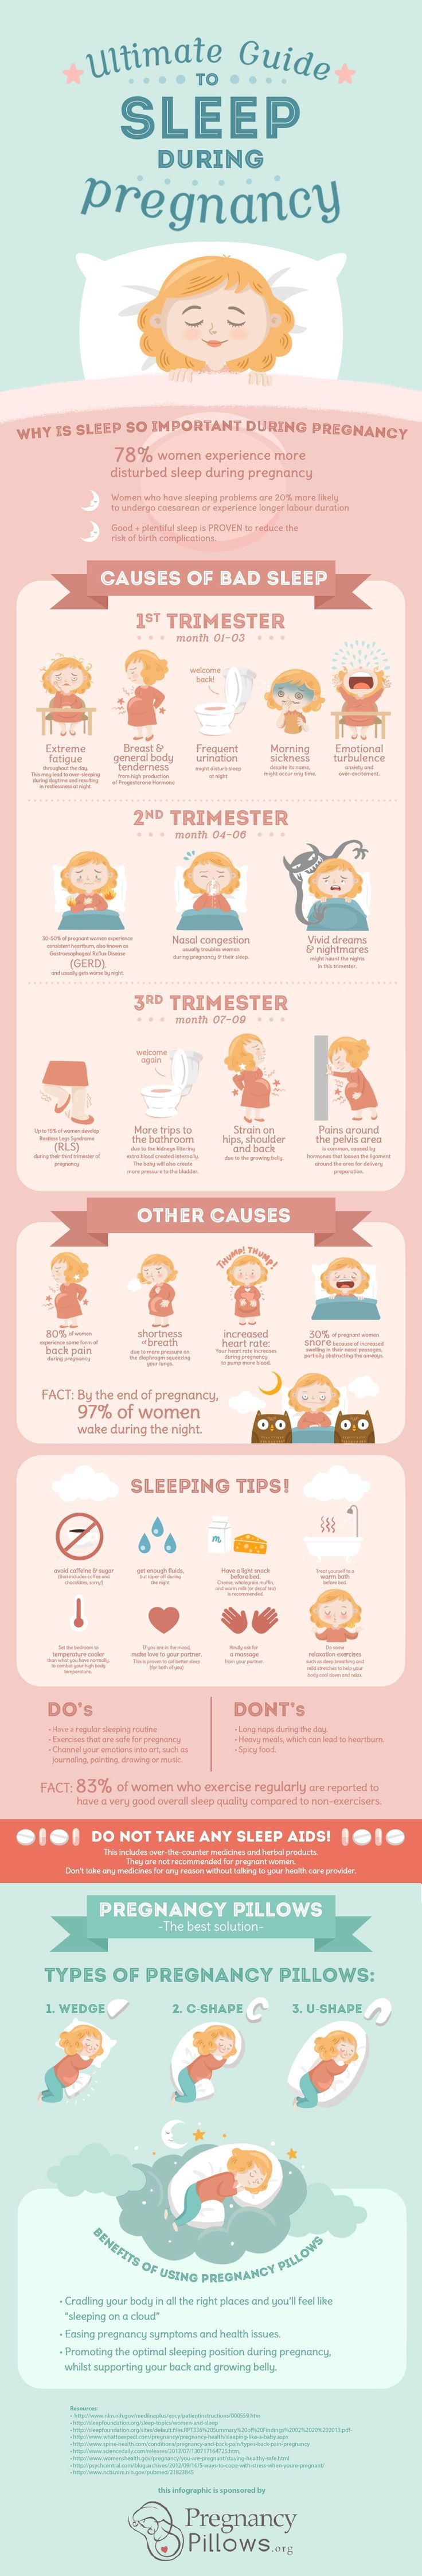 Best Way to Sleep While Pregnant Sleeping comfortably at night while pregnant can become increasingly difficult. Find out what tip this mom of 2 has for getting your best sleep while pregnant! #howtosleepwhilepregnant #pregnantpillows #pregnancywedges #bestwaytosleepwhilepregnant #pregnancy #pregnancyrelief  Best-Way-to -Sleep-While-Pregnant